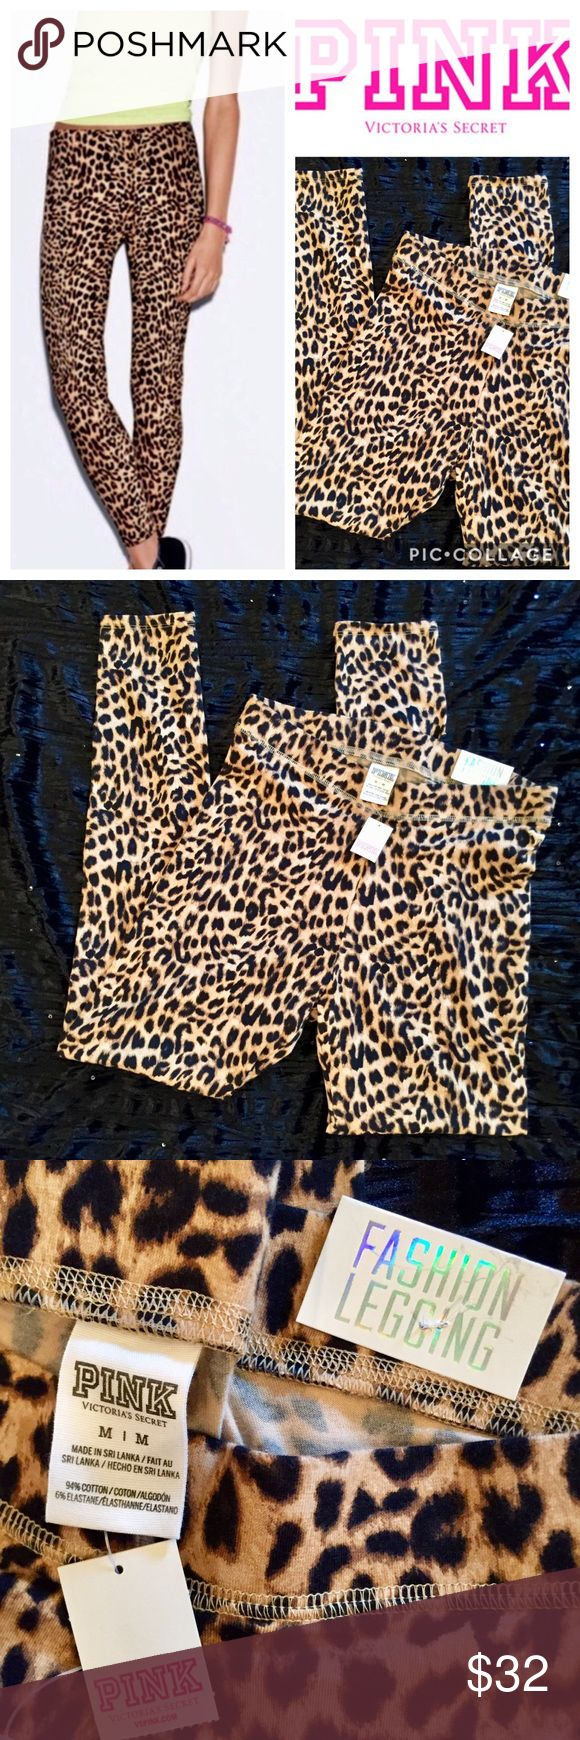 "🆕🎁 Victoria's Secret PINK Cheetah Leggings NWT Victoria's Secret PINK Cheetah Animal Print Fashion Leggings  Brand New With Tags  Full Length  Size: Medium  Inseam: 26"" Material: 94% Cotton, 6% Elastane 🎁 Great Gift Idea! 🎁 Smoke Free Home  🛍 Bundle And Save! 🛍 PINK Victoria's Secret Pants Leggings"